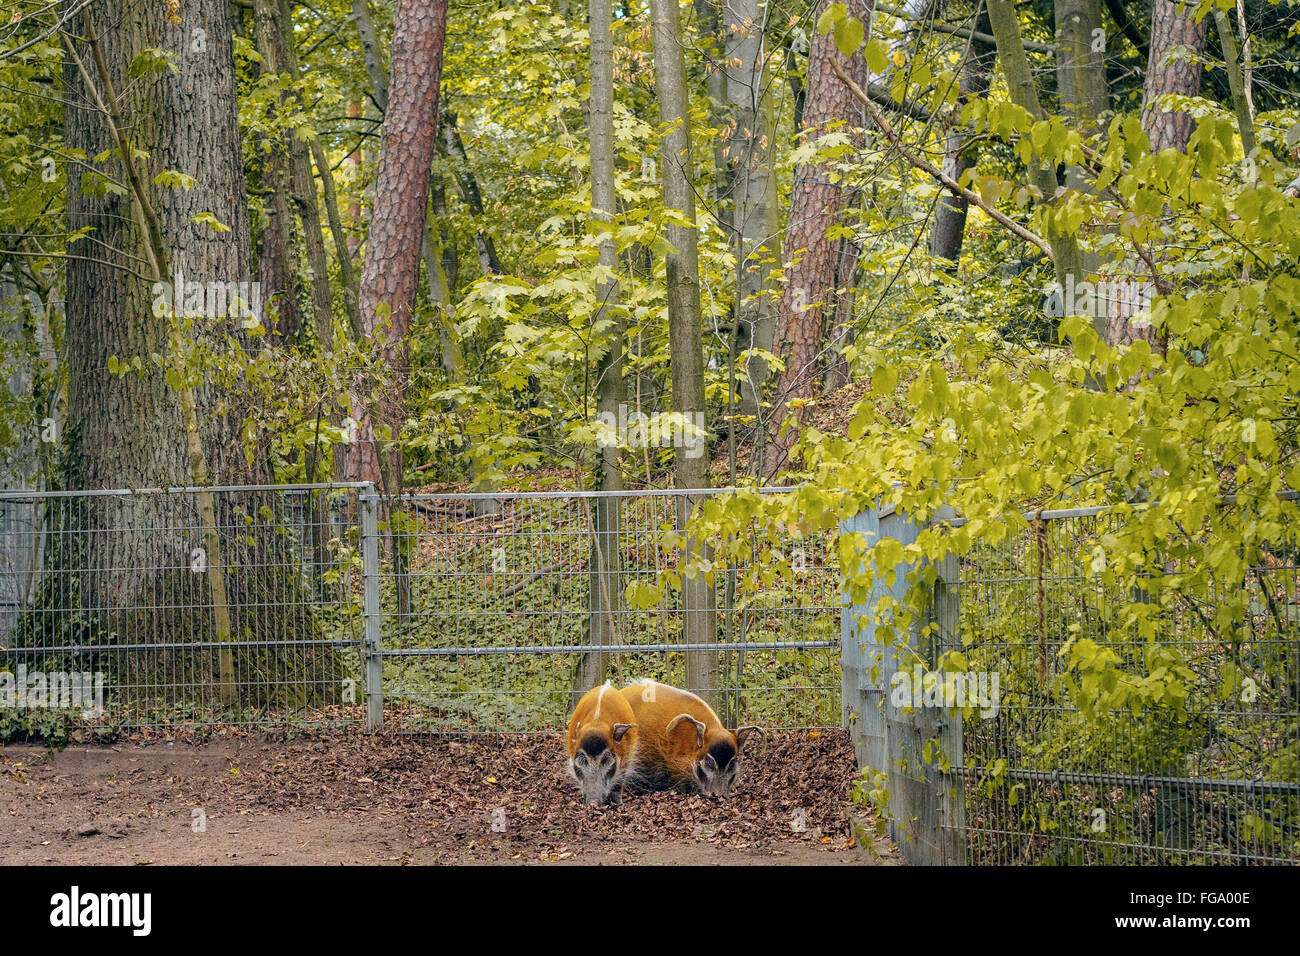 Red River Hogs Against Trees In Zoo - Stock Image